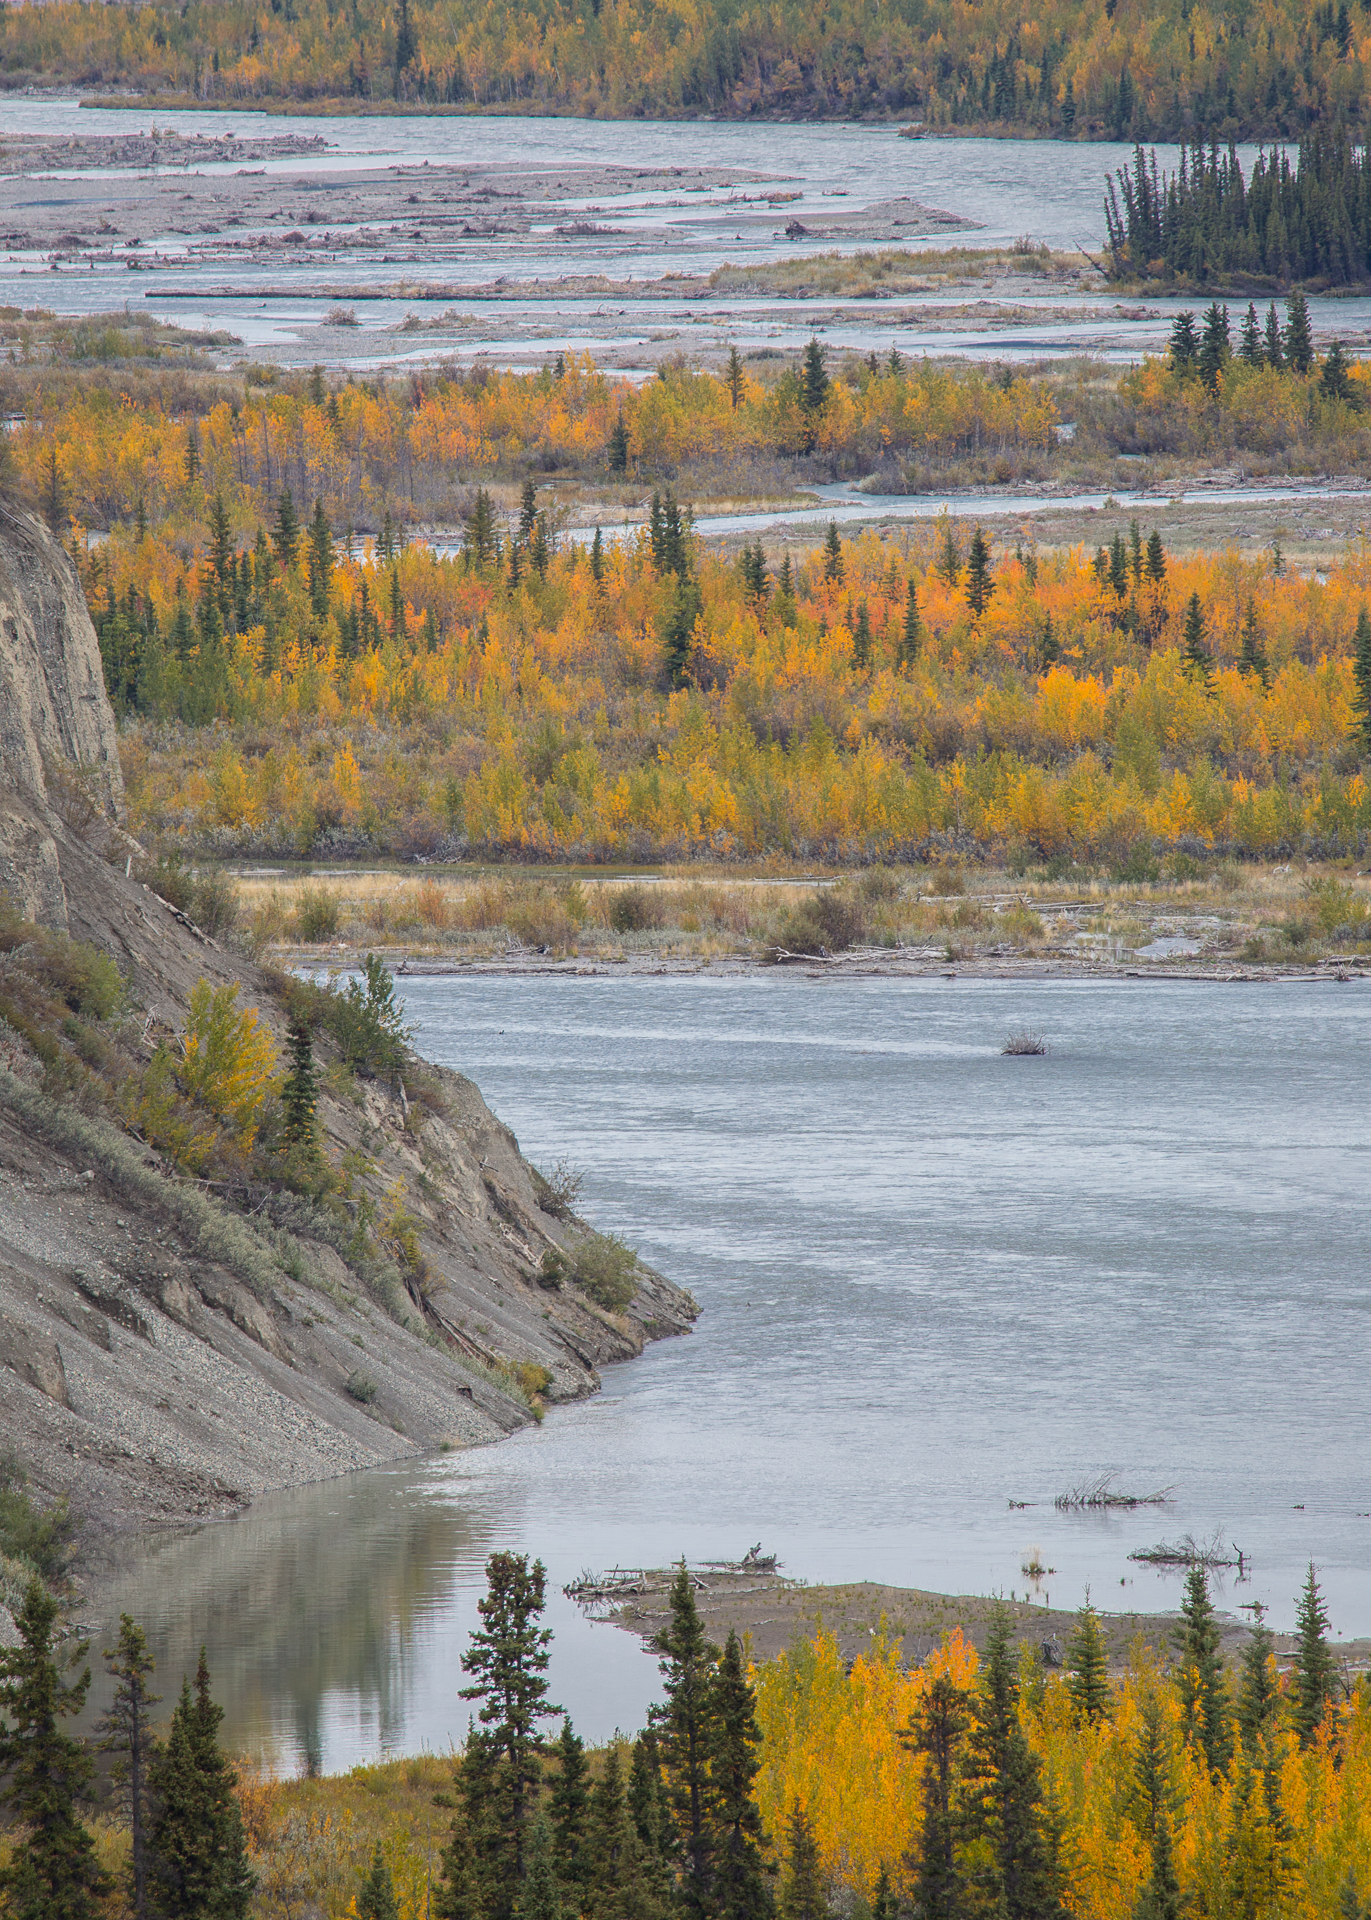 A detail of the valley floor, from the Kluane River viewpoint.